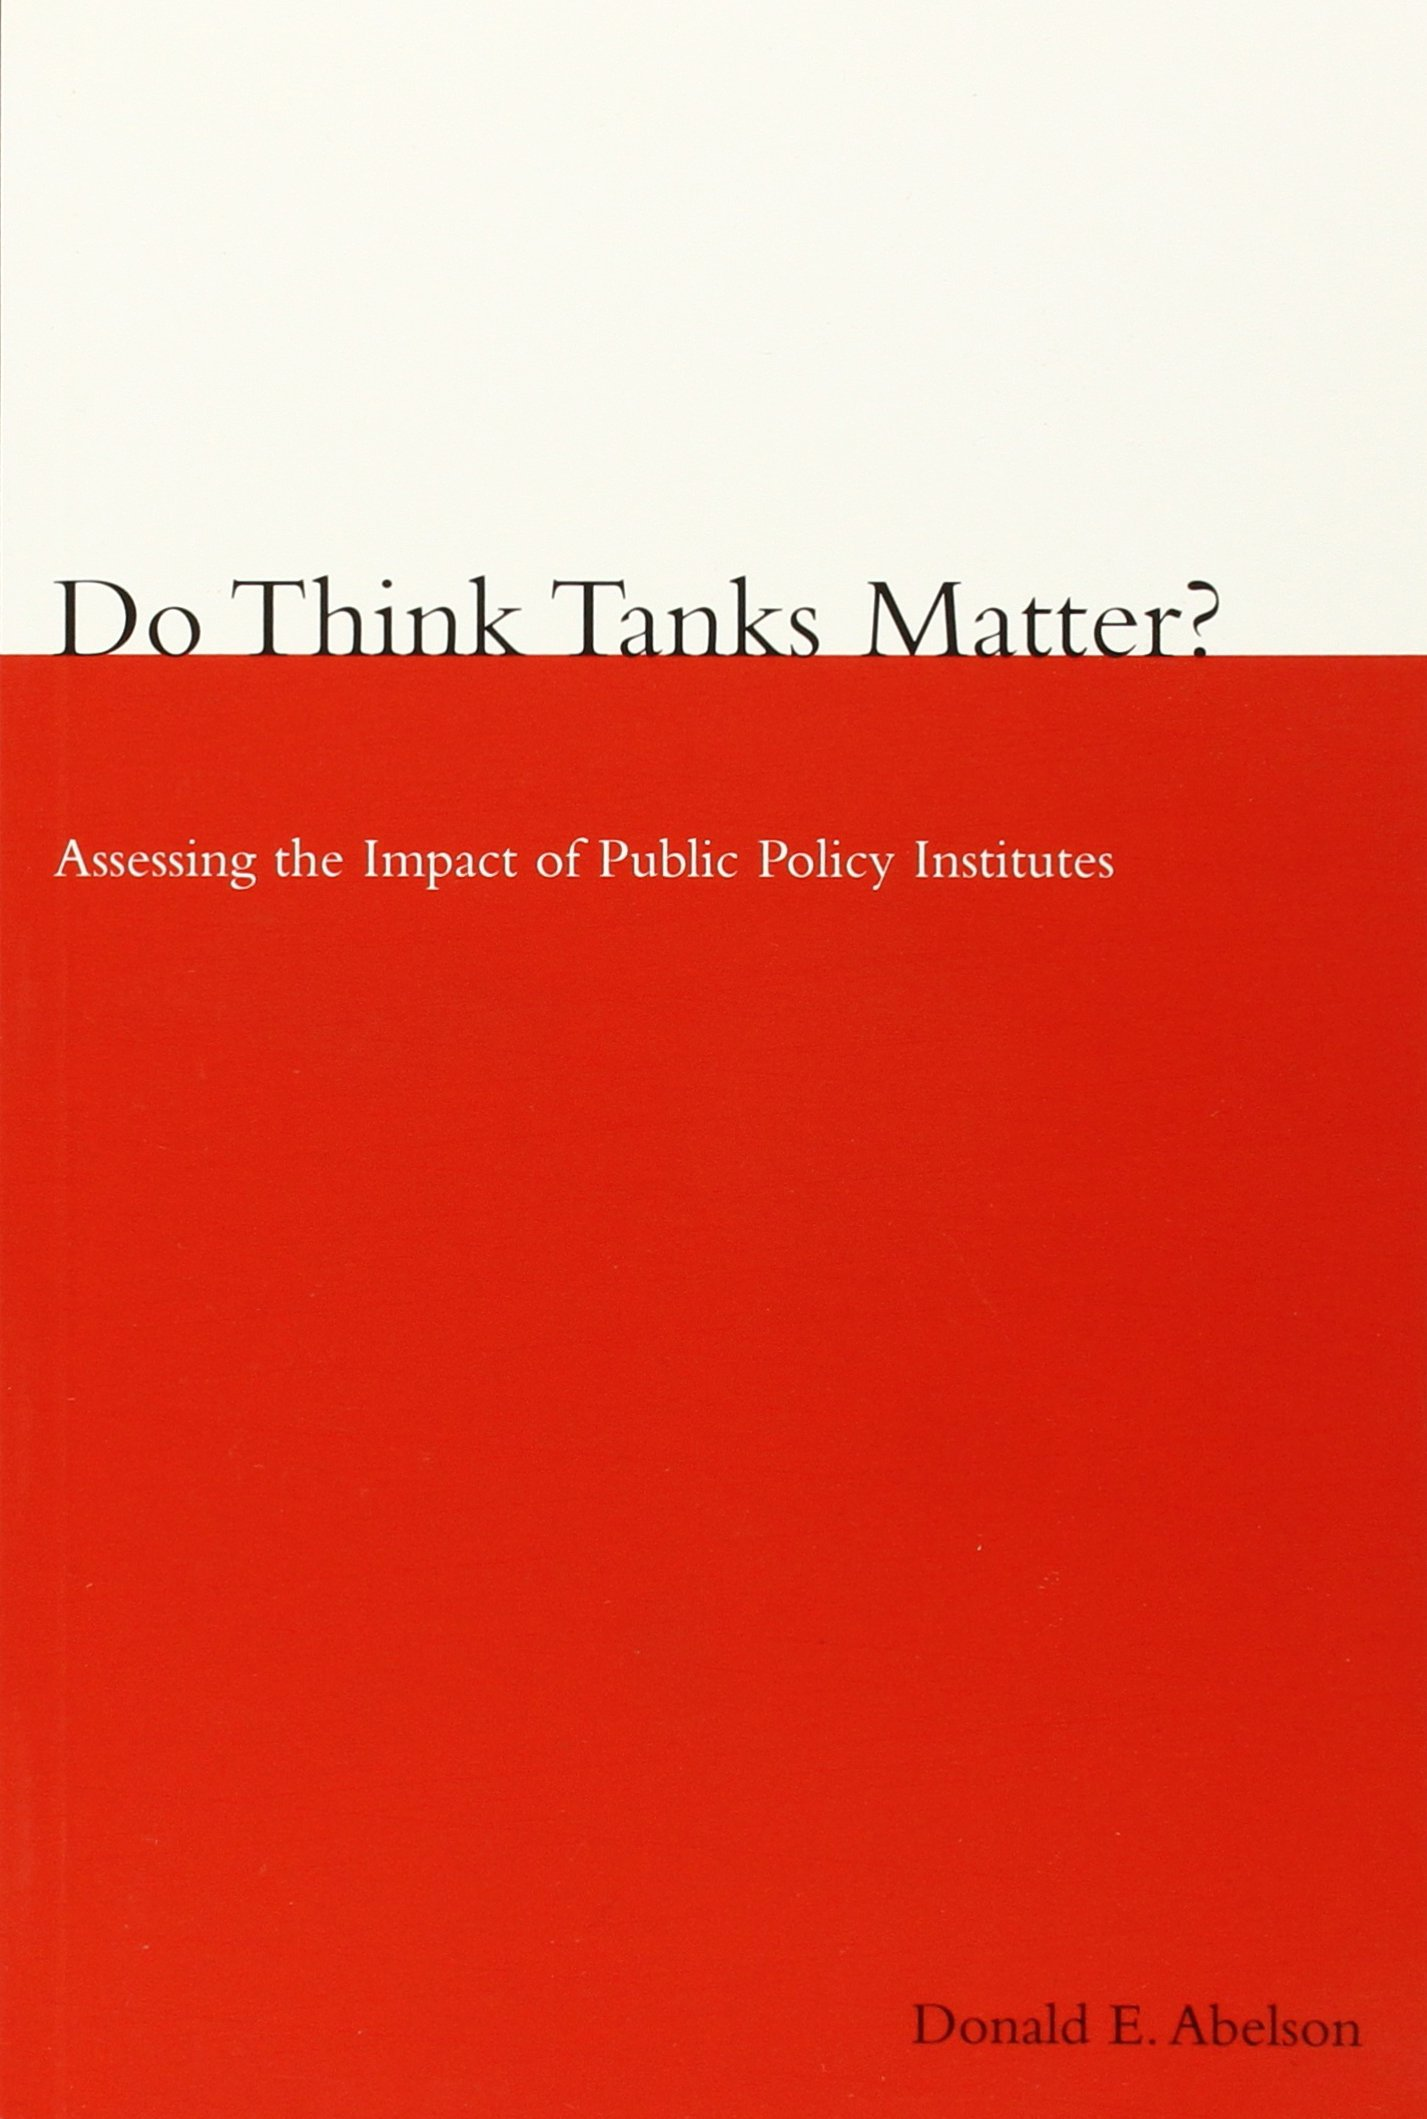 Download Do Think Tanks Matter?, First Edition: Assessing the Impact of Public Policy Institutes PDF